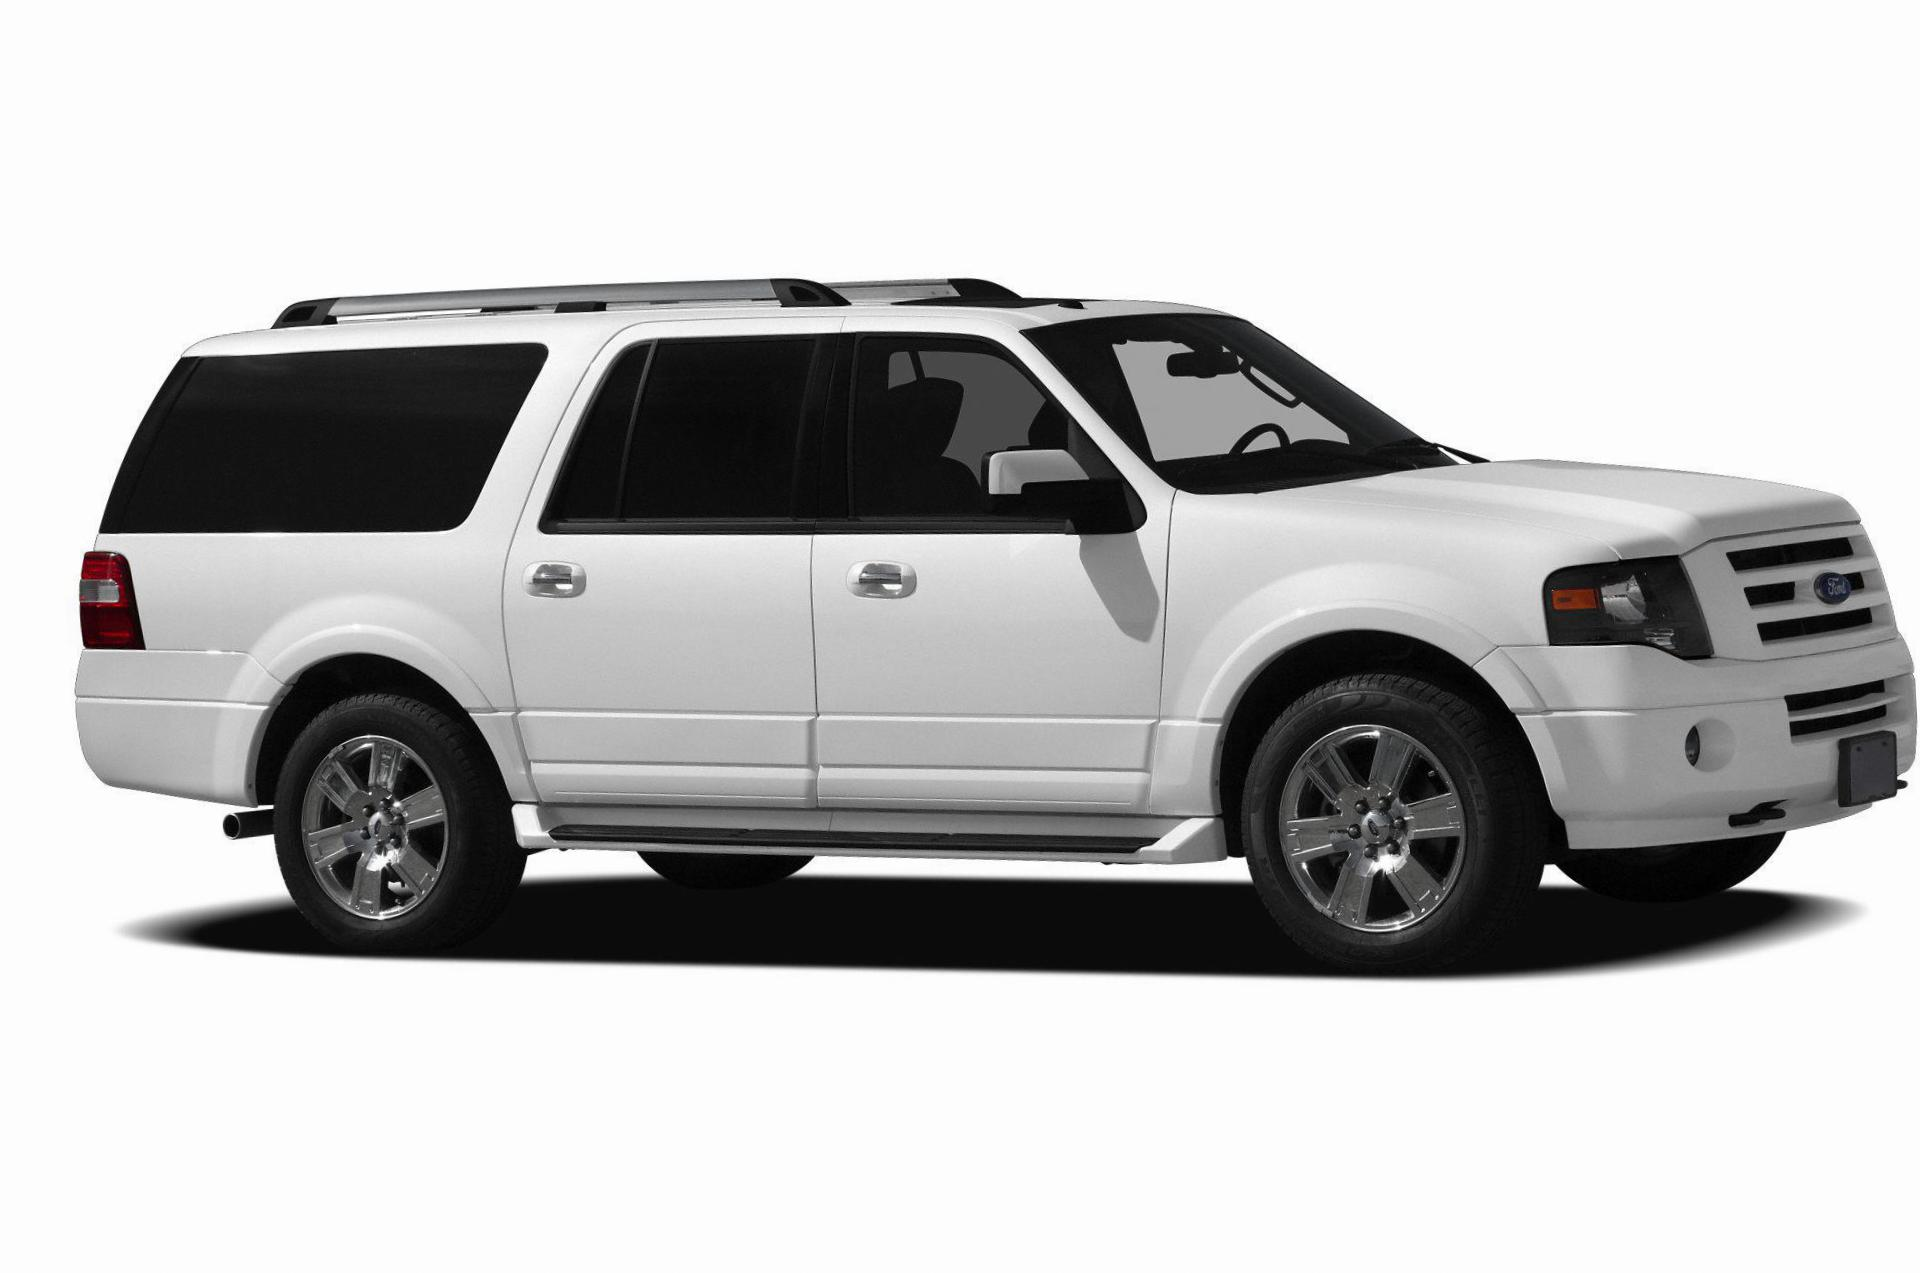 ford expedition photos and specs photo expedition ford for sale and 22 perfect photos of ford. Black Bedroom Furniture Sets. Home Design Ideas